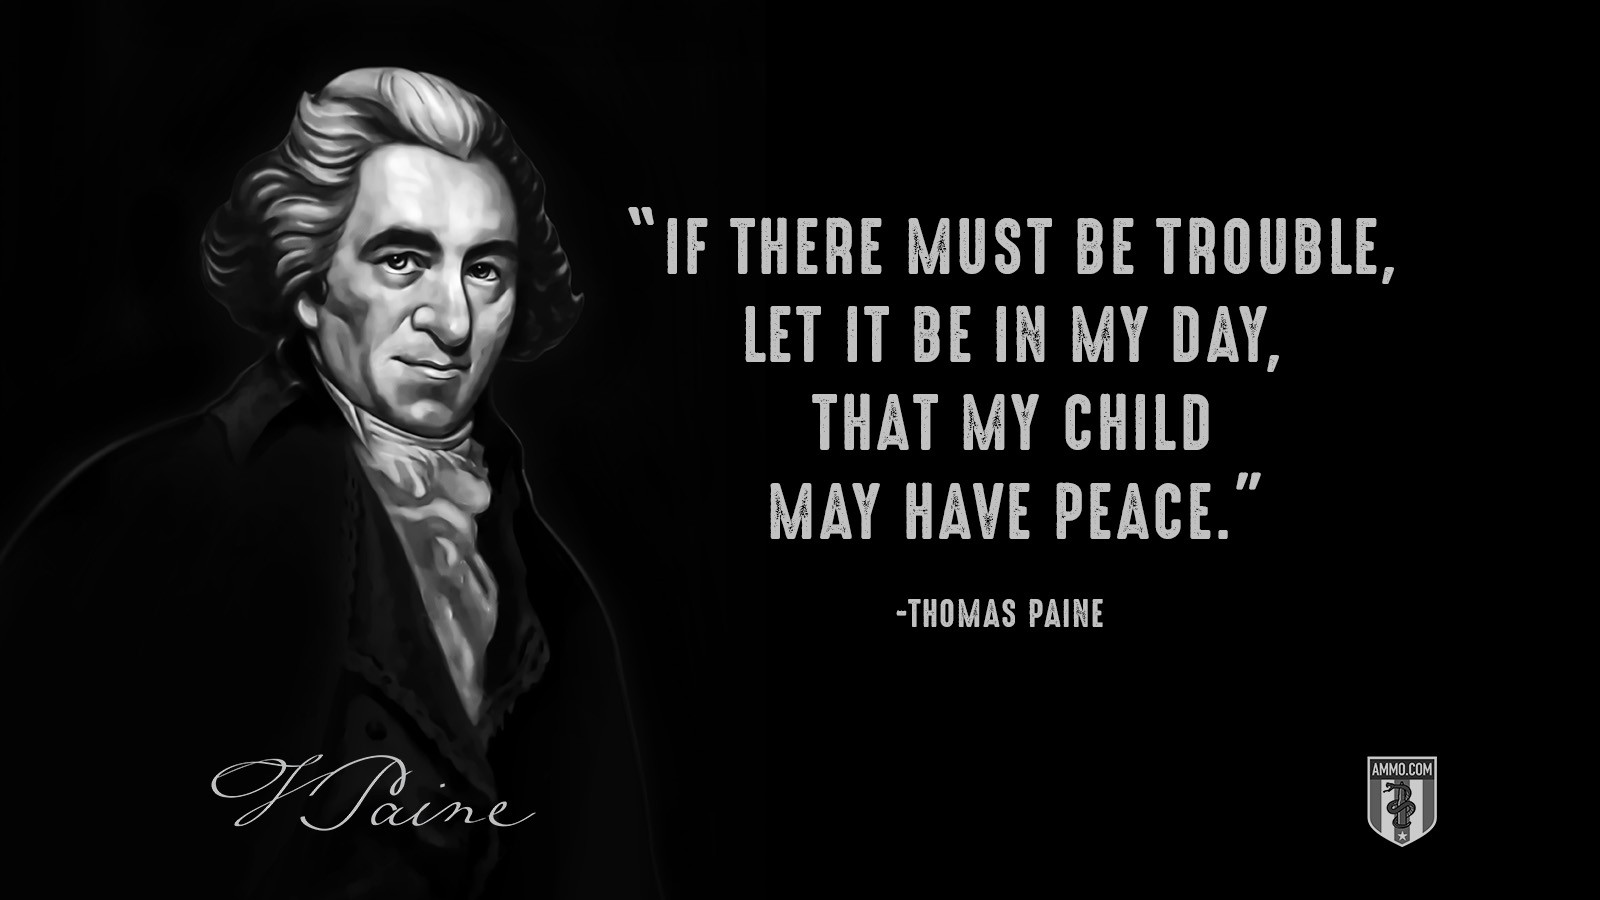 """If there must be trouble, let it be in my day, that my child may have peace."" - Thomas Paine"